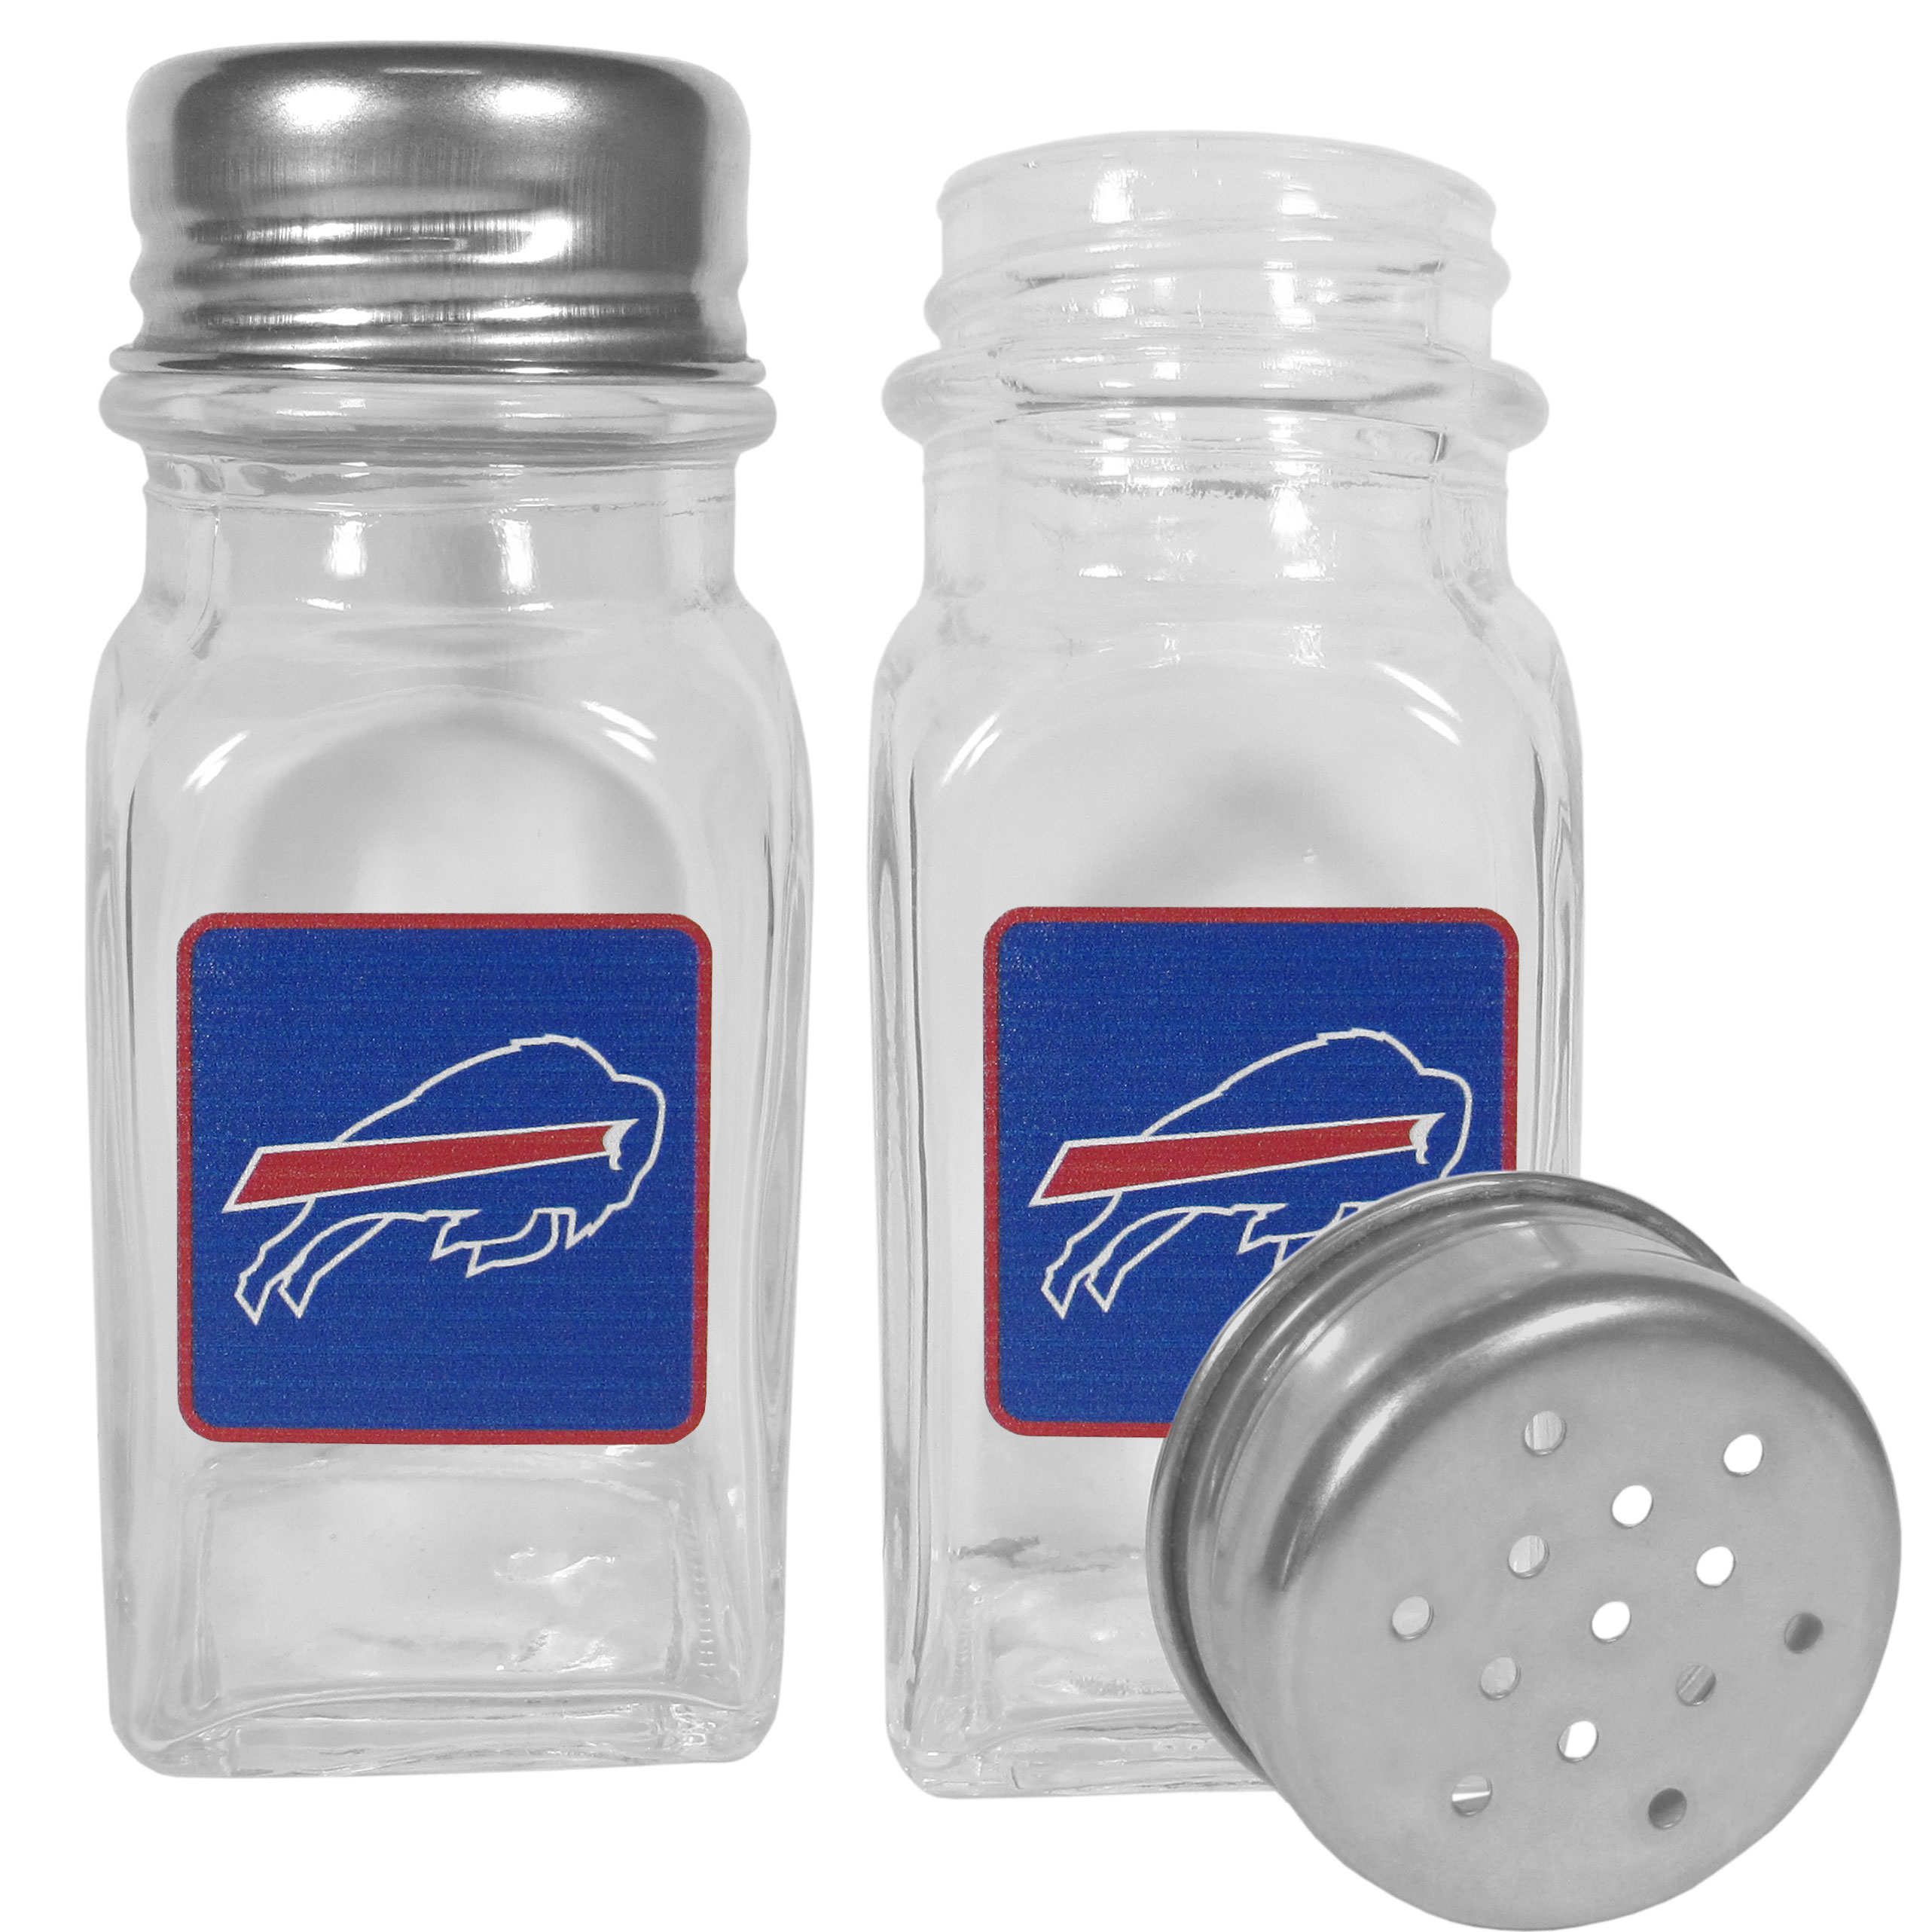 Buffalo Bills Graphics Salt and Pepper Shaker - No tailgate party is complete without your Buffalo Bills salt & pepper shakers featuring bright team logos. The diner replica salt and pepper shakers are glass with screw top lids. These team shakers are a great grill accessory whether you are barbecuing on the patio, picnicing or having a game day party.